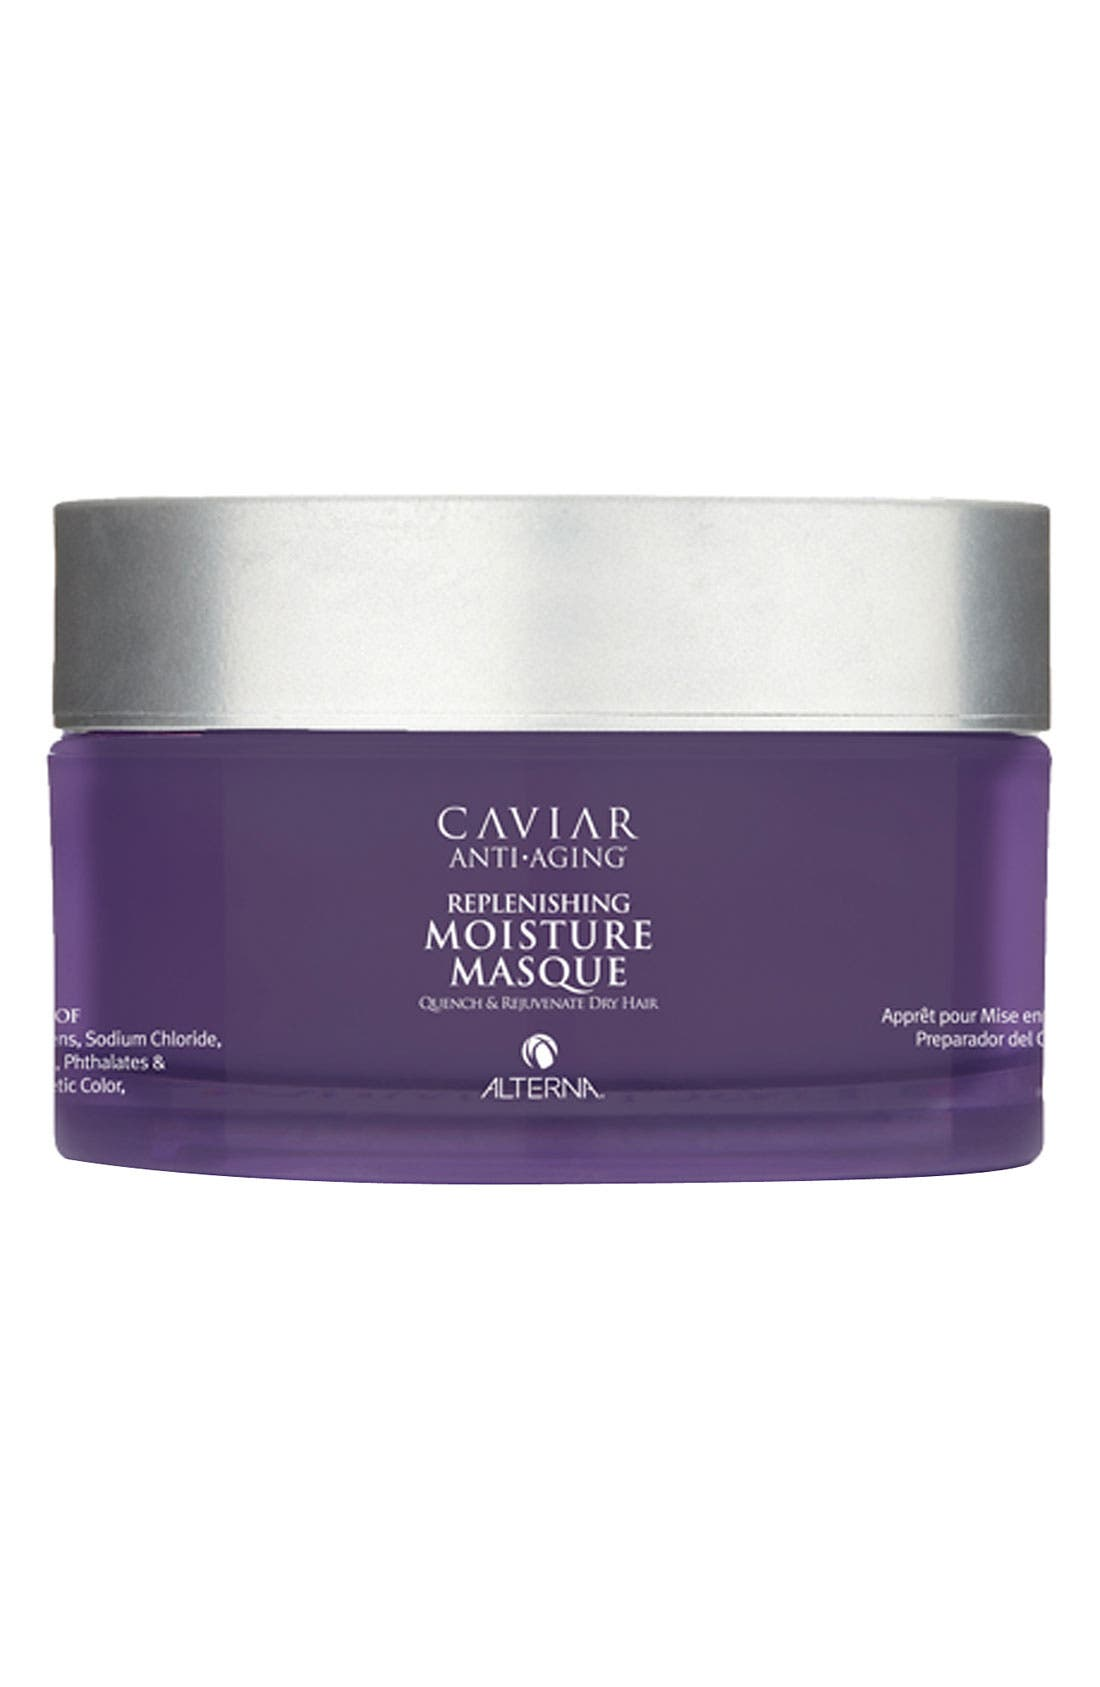 ALTERNA® Caviar Anti-Aging Replenishing Moisture Masque